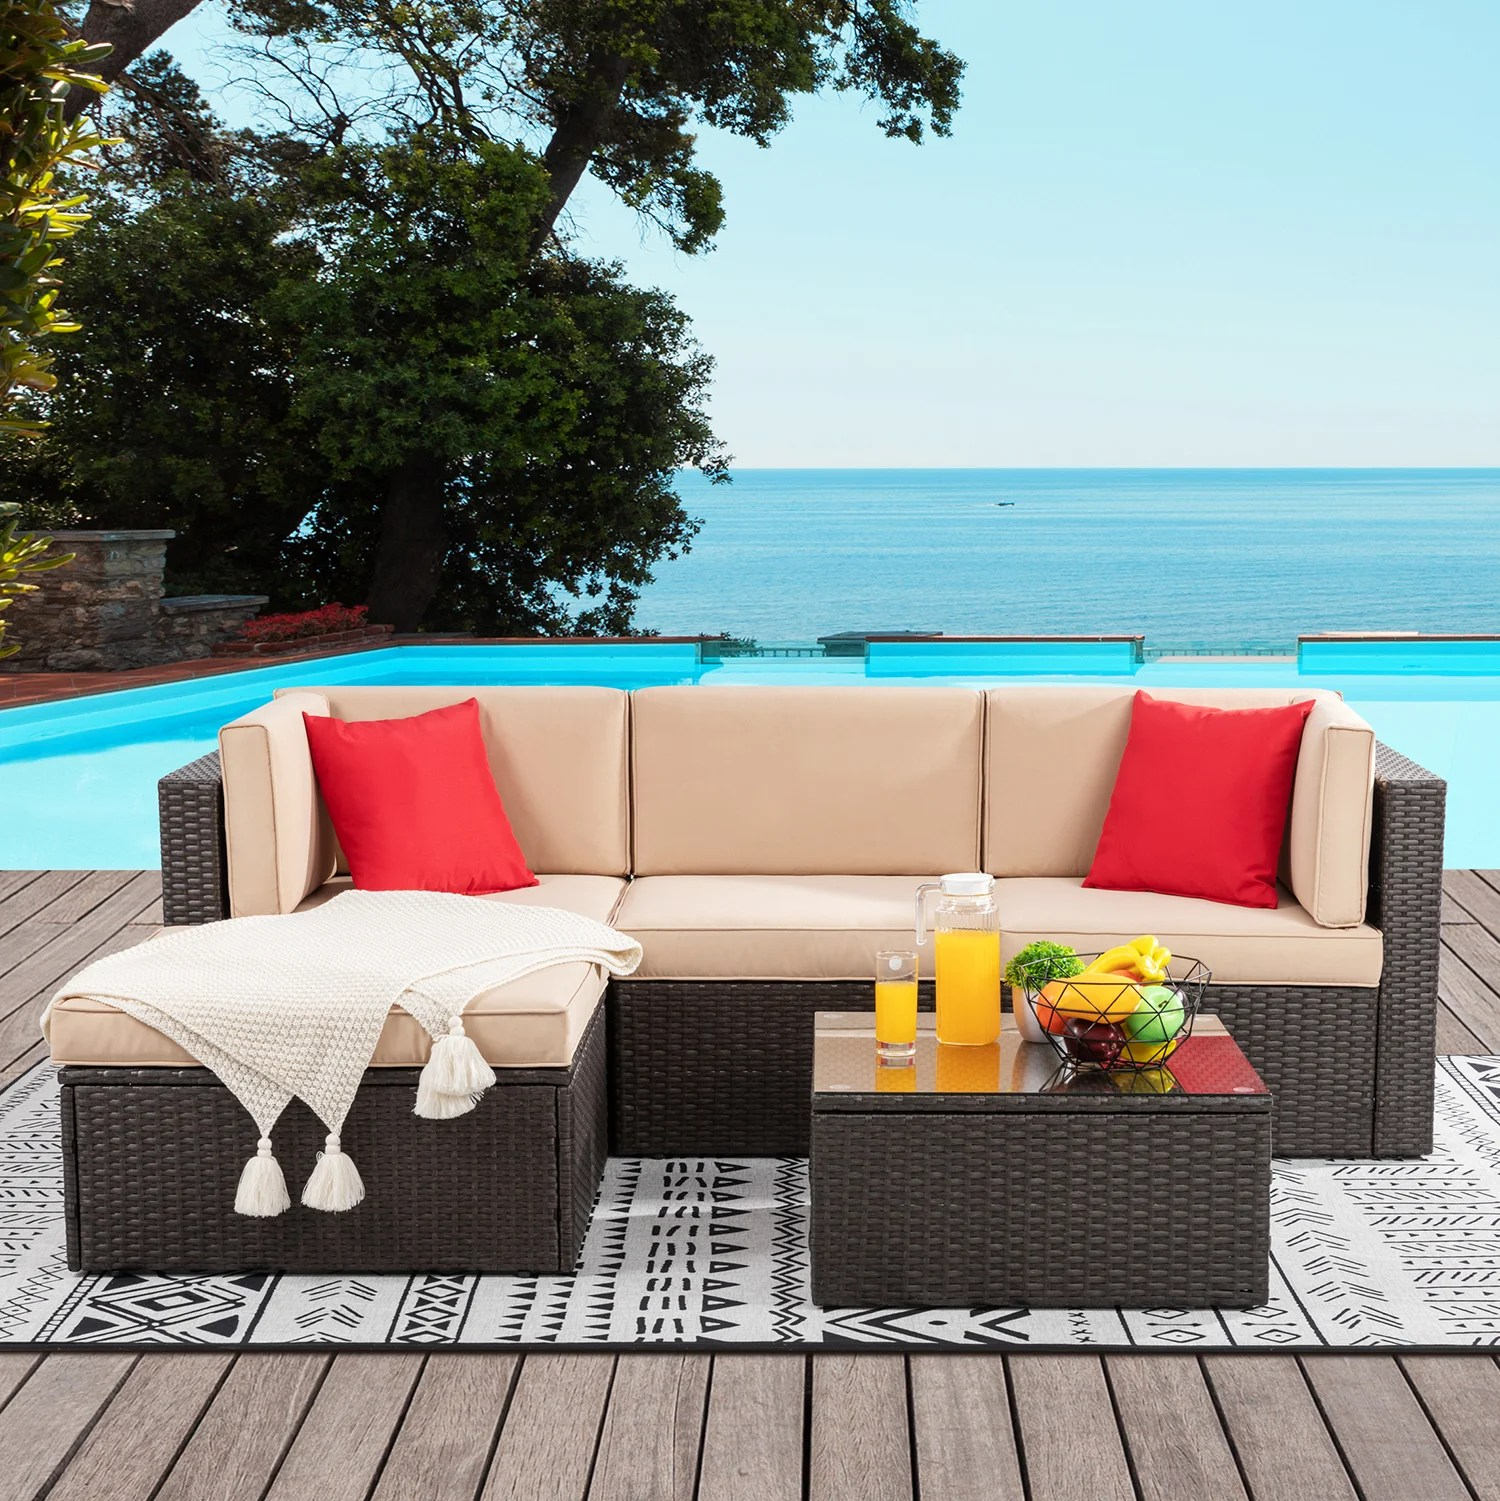 ebern designs 5 pieces small patio furniture sets outdoor all weather sectional patio sofa set pe rattan wicker patio conversation set with ottoman glass table and beige cushions brown reviews wayfair ca